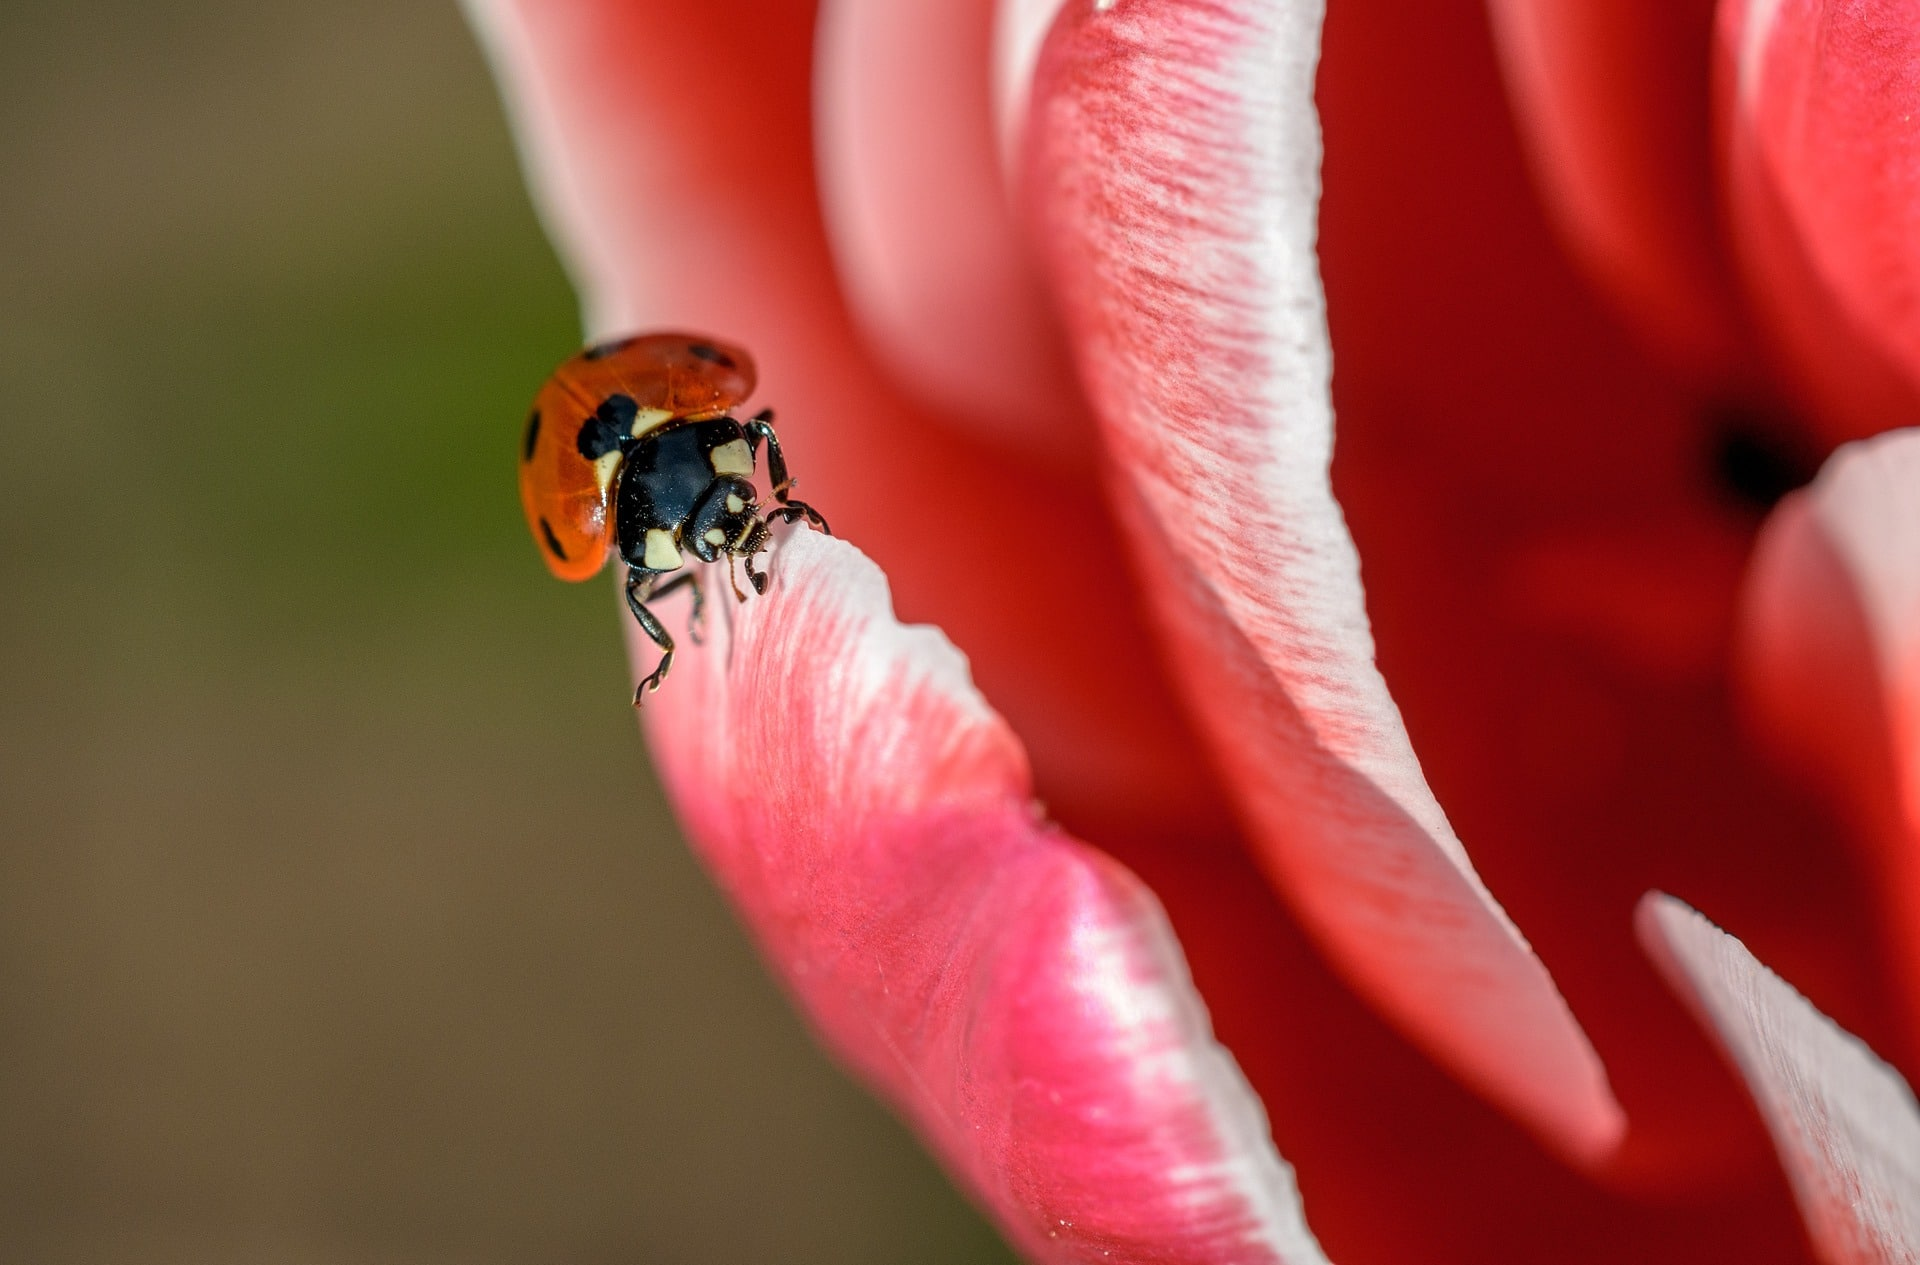 Lady bug on a pink petal of a flower